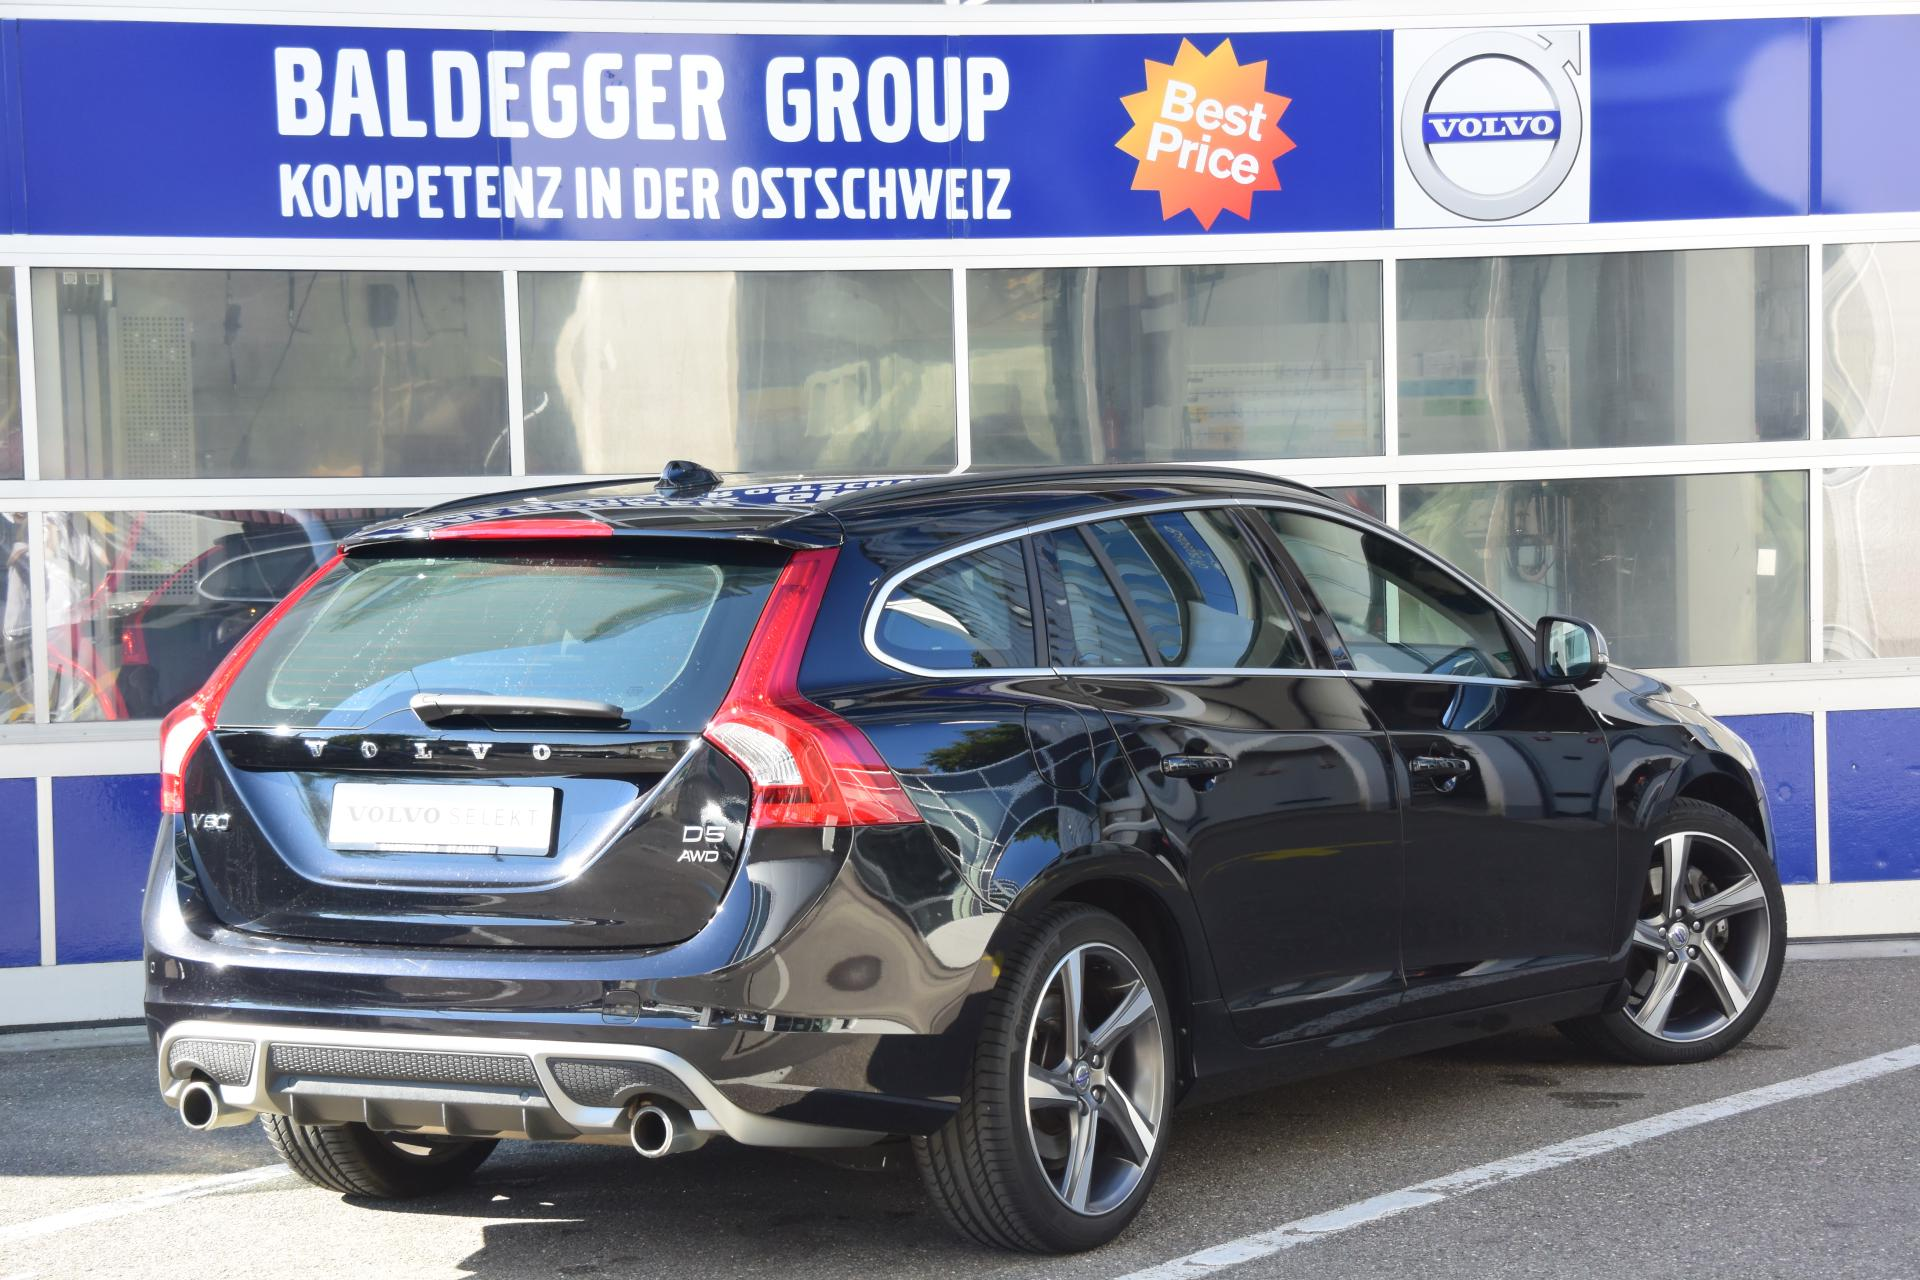 volvo v60 d5 awd r design baldegger automobile ag. Black Bedroom Furniture Sets. Home Design Ideas